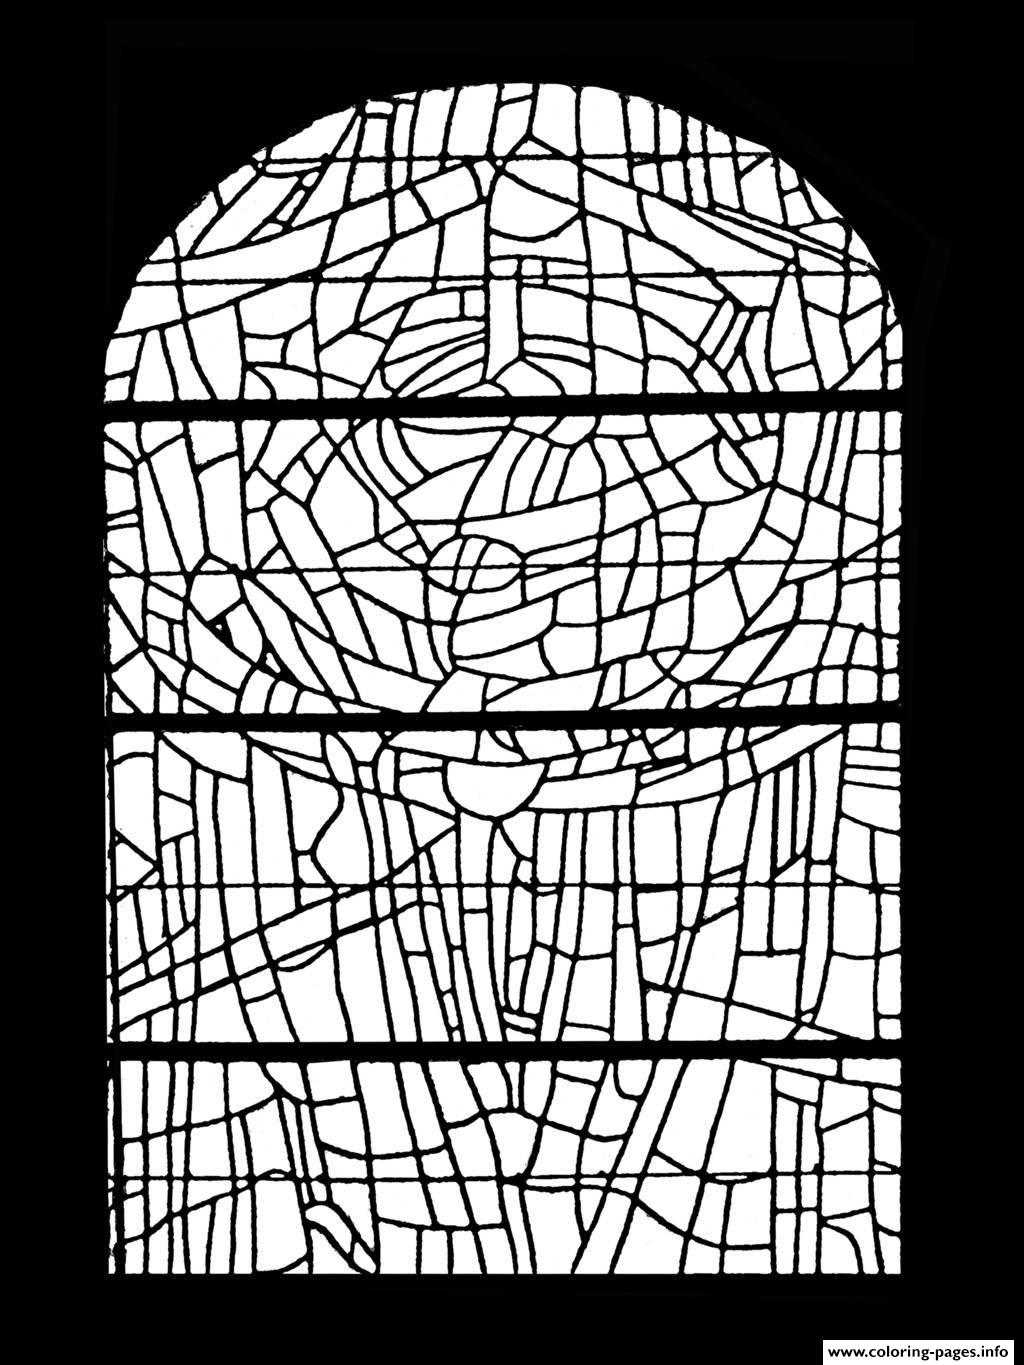 Adult Stained Glass Choeur Eglise Paroissale Saint Servant Sur Oust France coloring pages